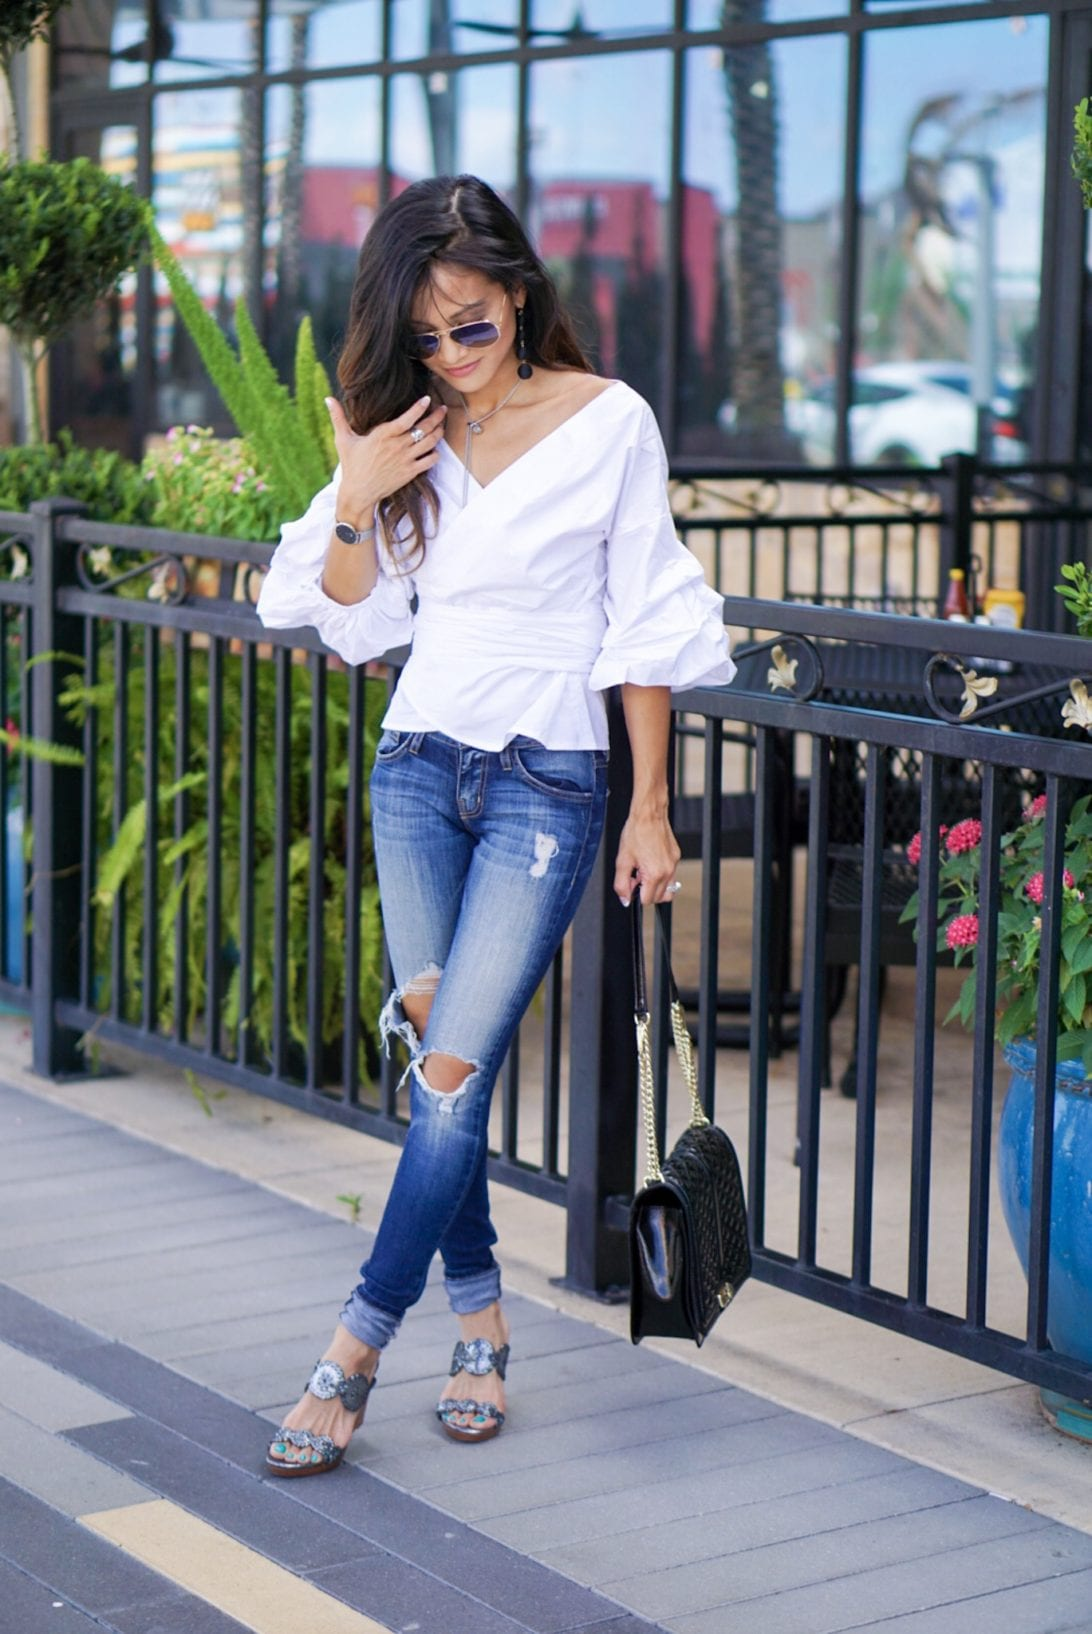 rayon aviators, daniel wellington, chicwish, white wrap top, denim, jack roger wedges, rebecca minkoff cross body bag